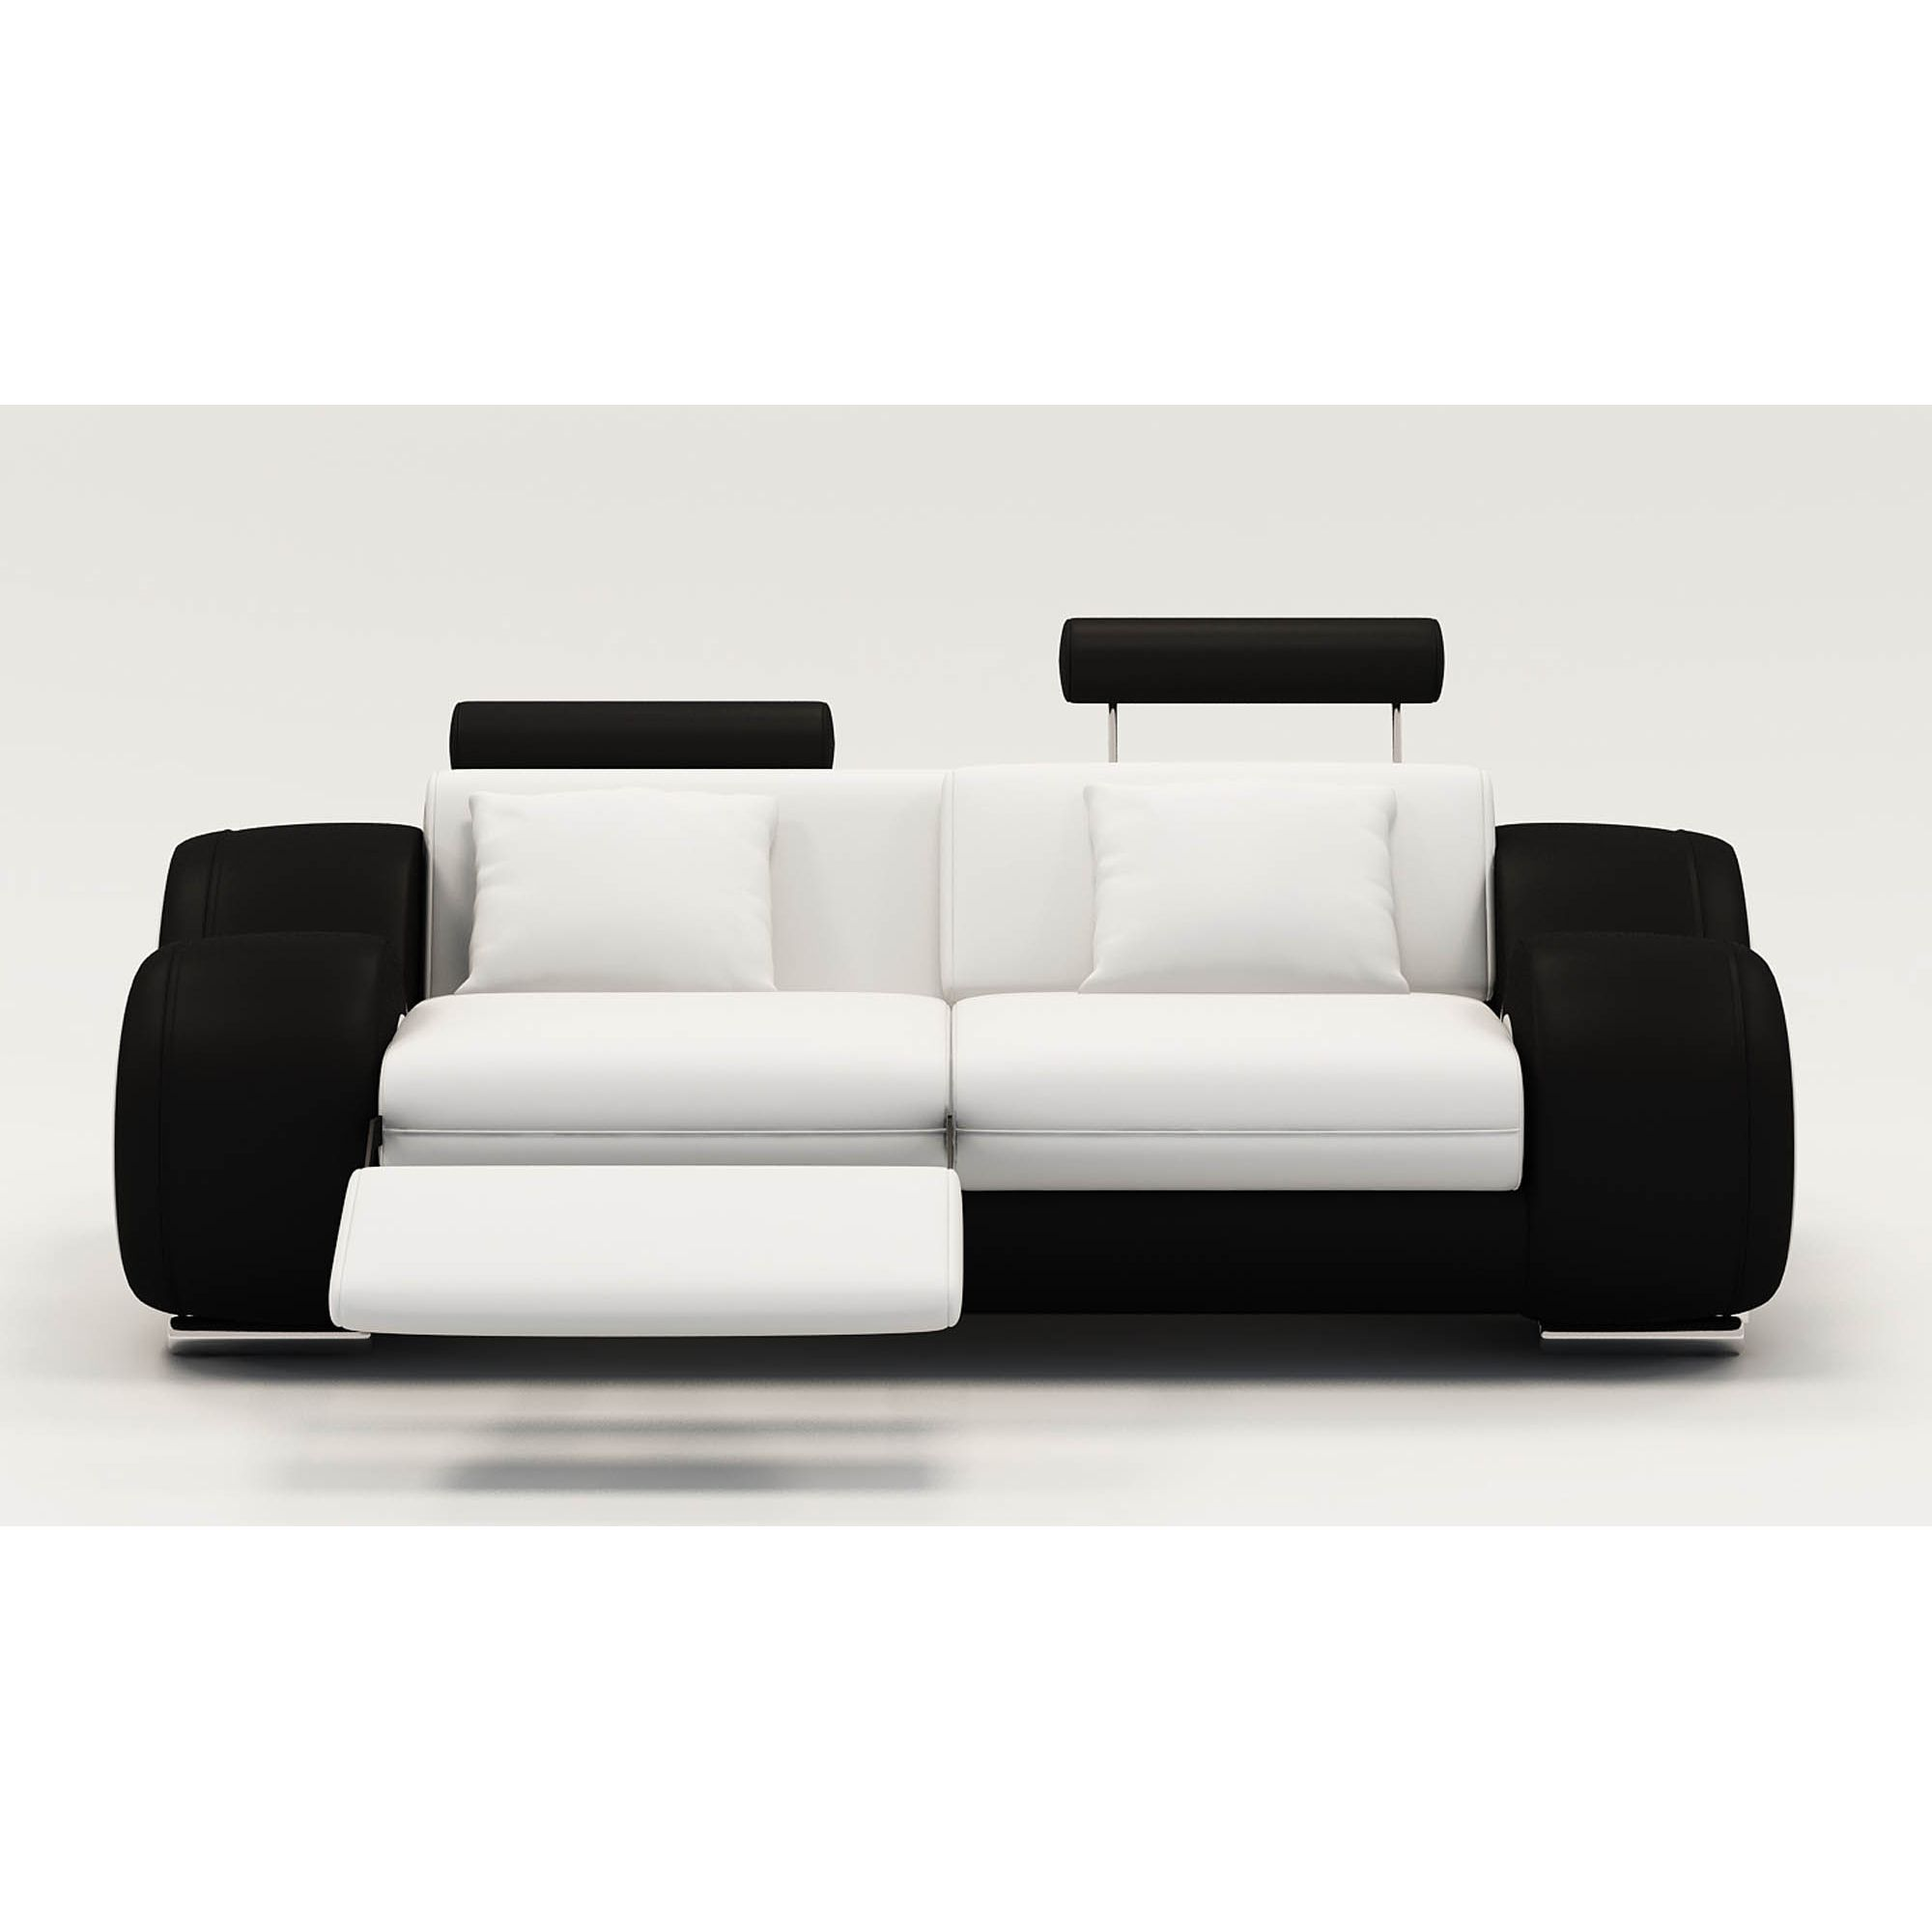 Deco in paris canape 2 places design relax oslo en cuir blanc et noir 2pl b - Canape relax 2 places ...